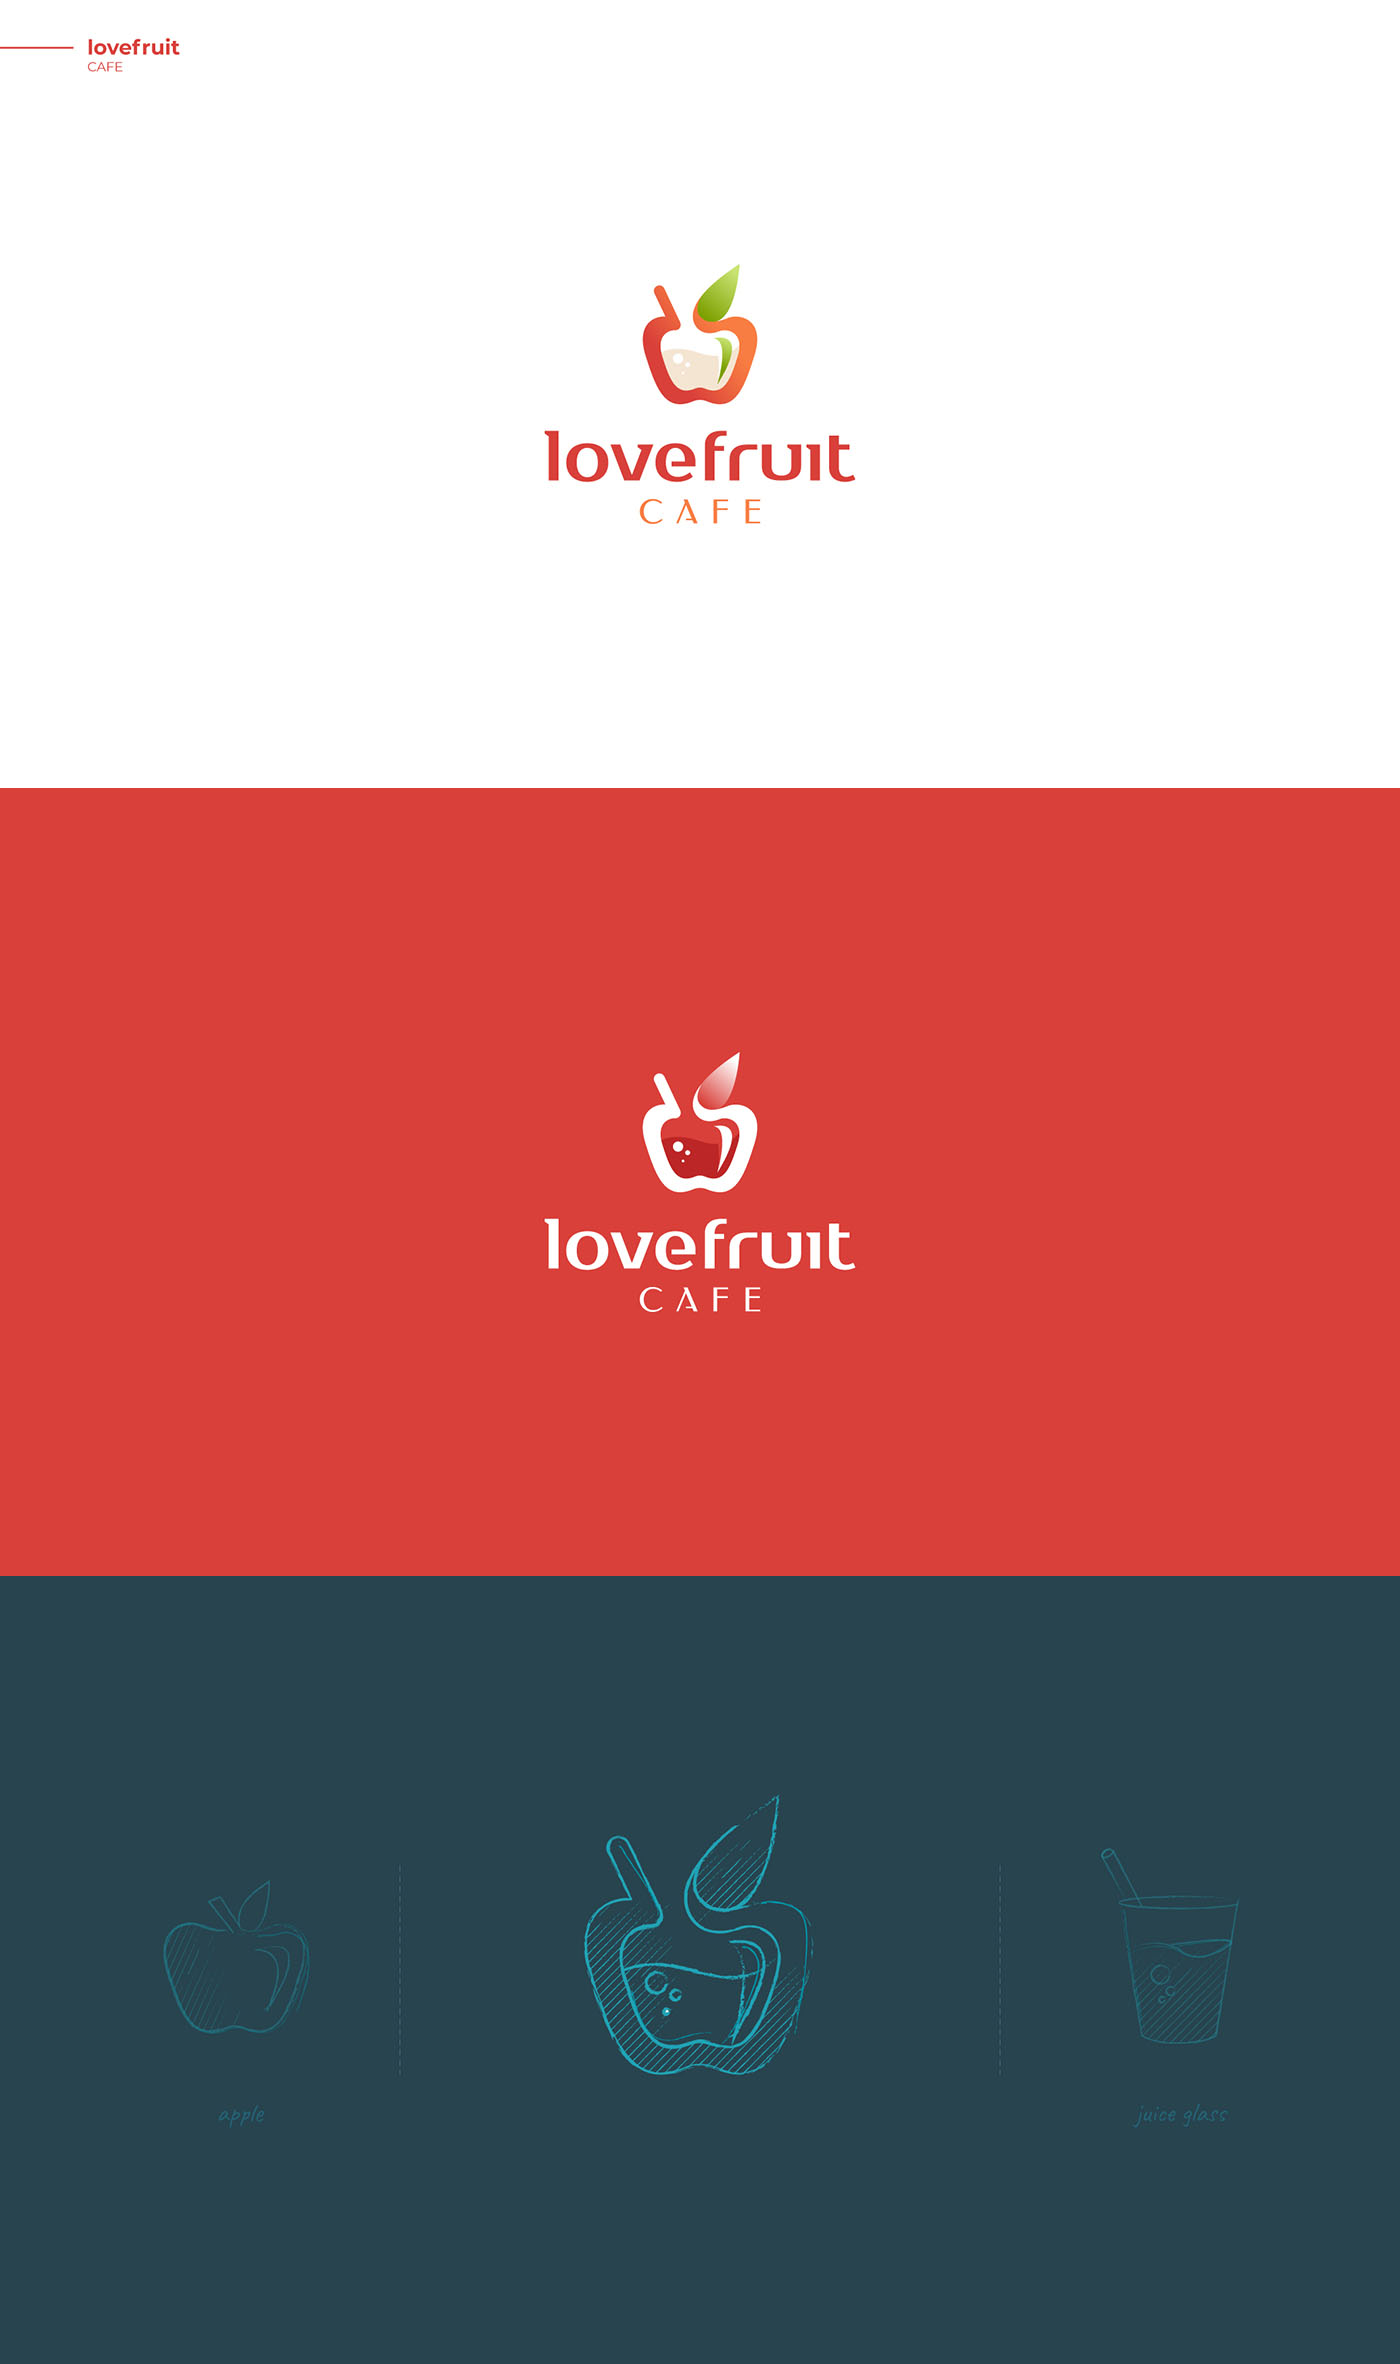 Love Fruit Cafe - Creative logo design by DAINOGO